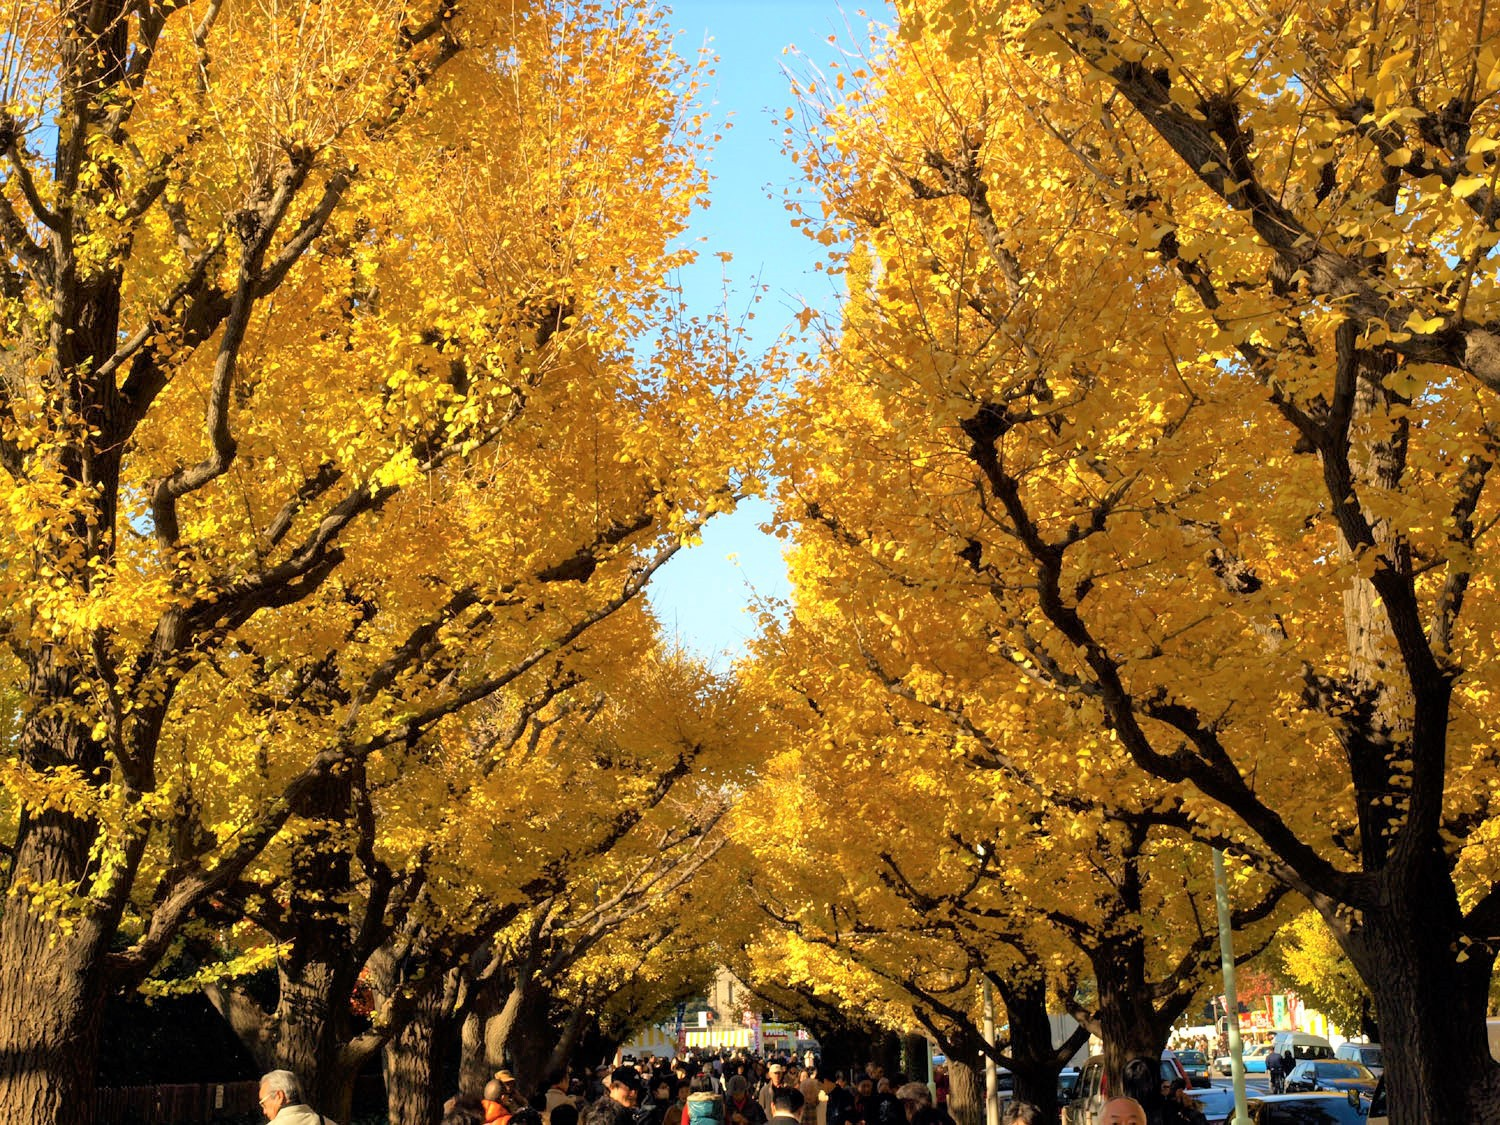 The stunning Ginkgo avenue at Meiji Jingu Gaien Icho Matsuri